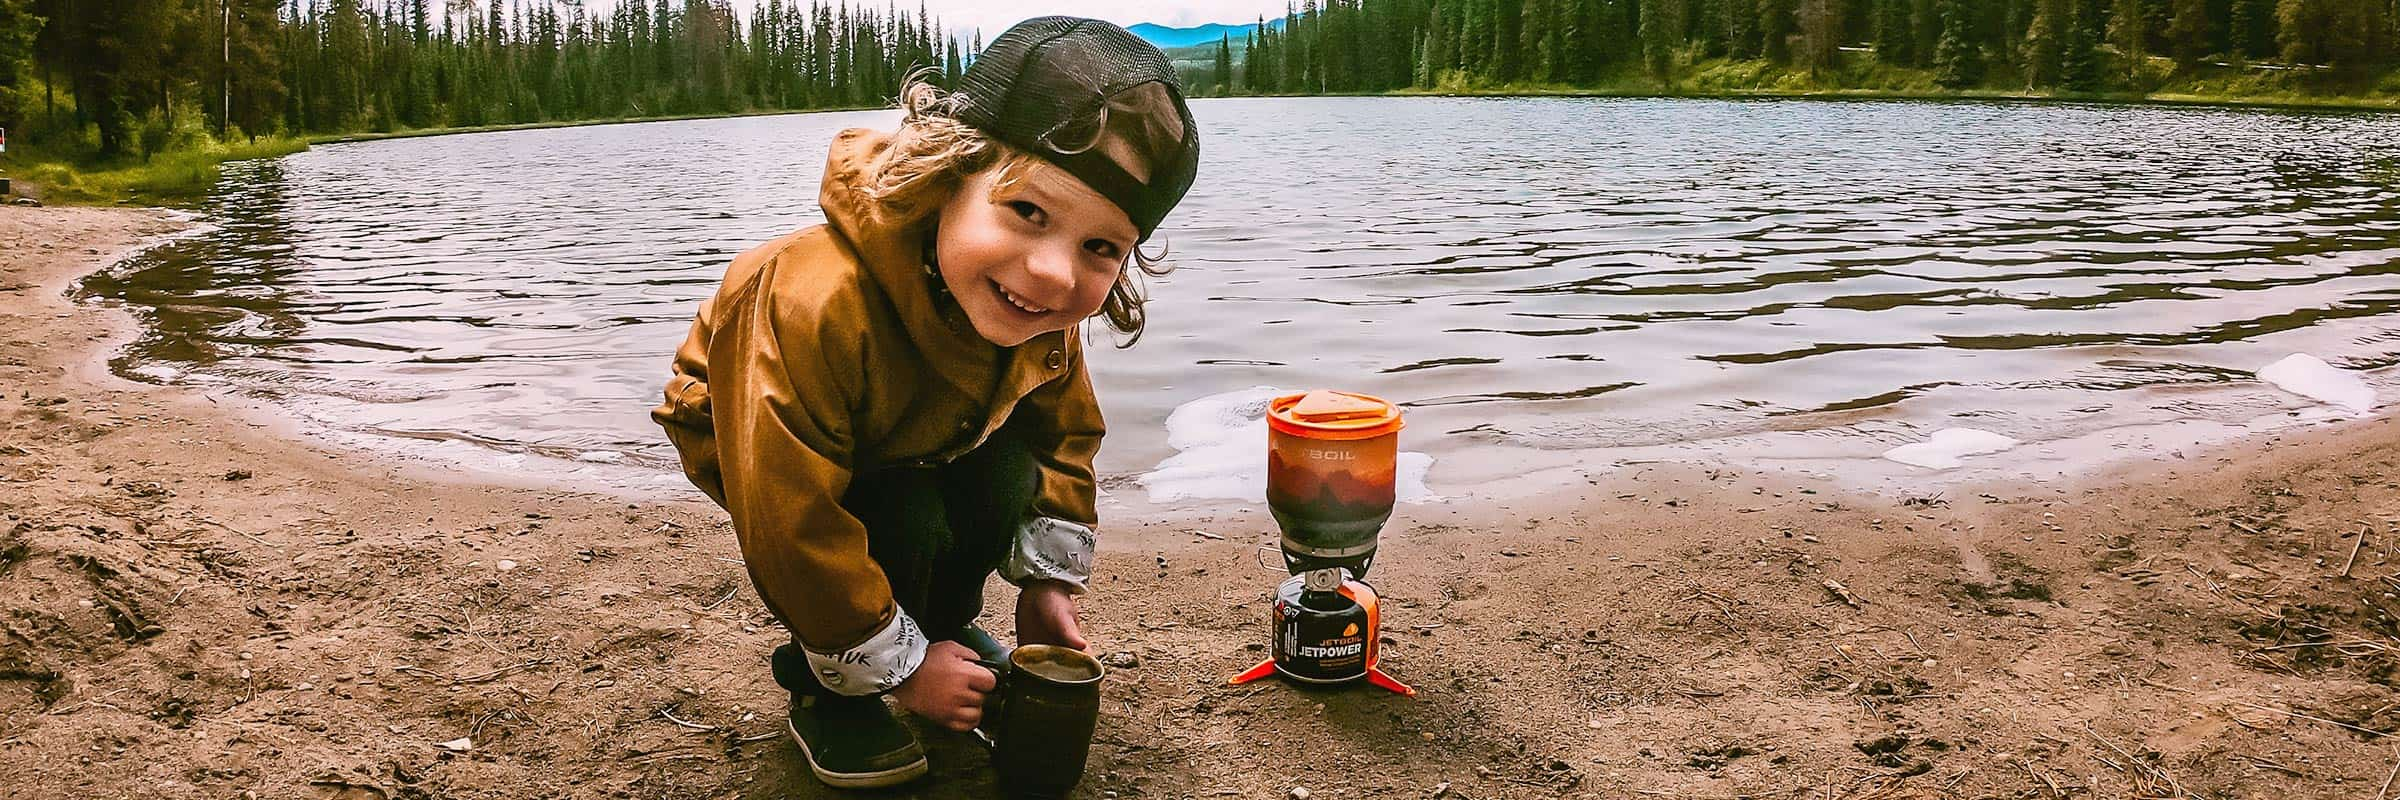 Jetboil. Jetboil Minimo Cooking System Review